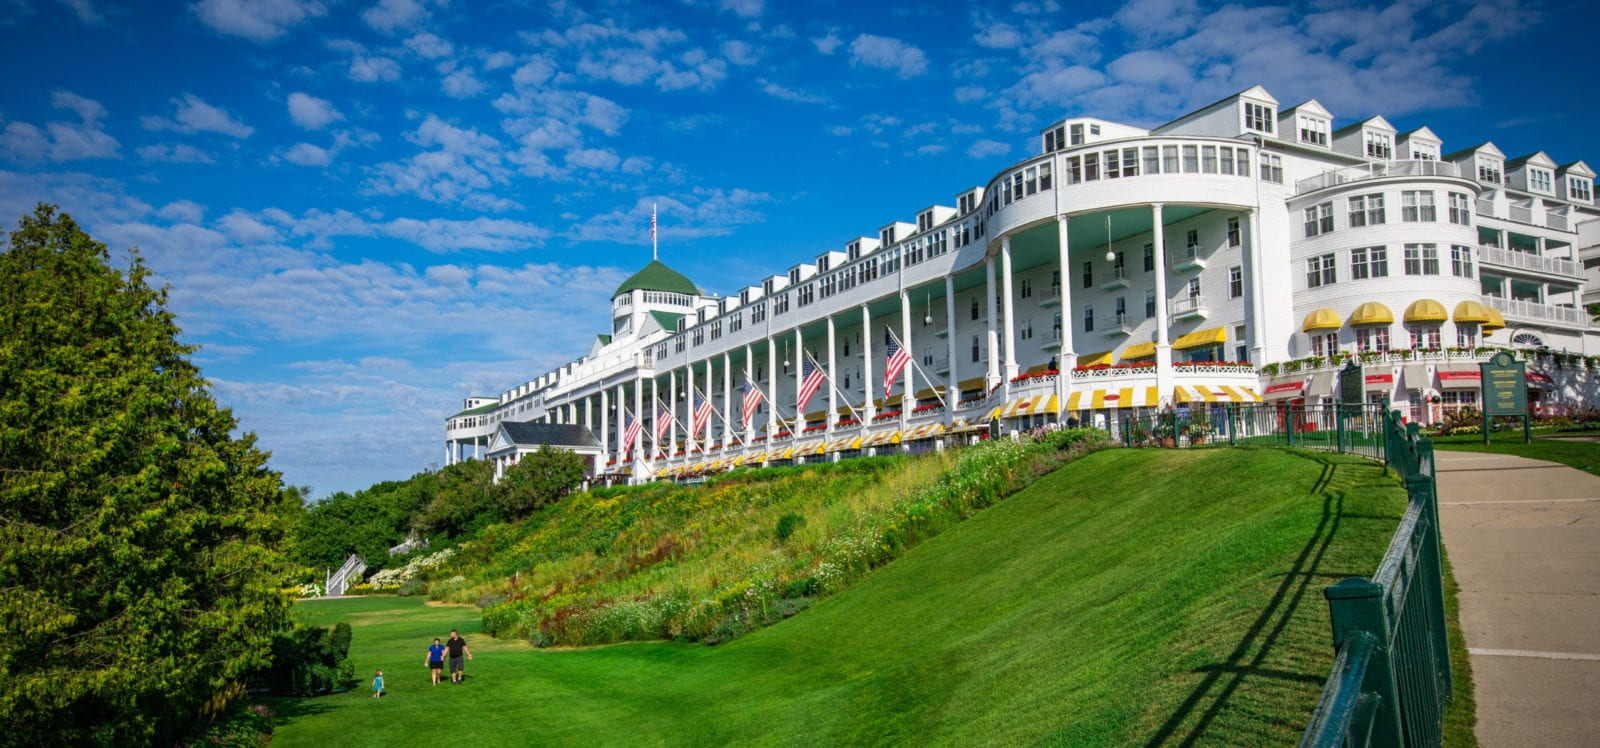 A family walks on the lawn at Grand Hotel on Mackinac Island, Michigan (Photo: Grand Hotel)